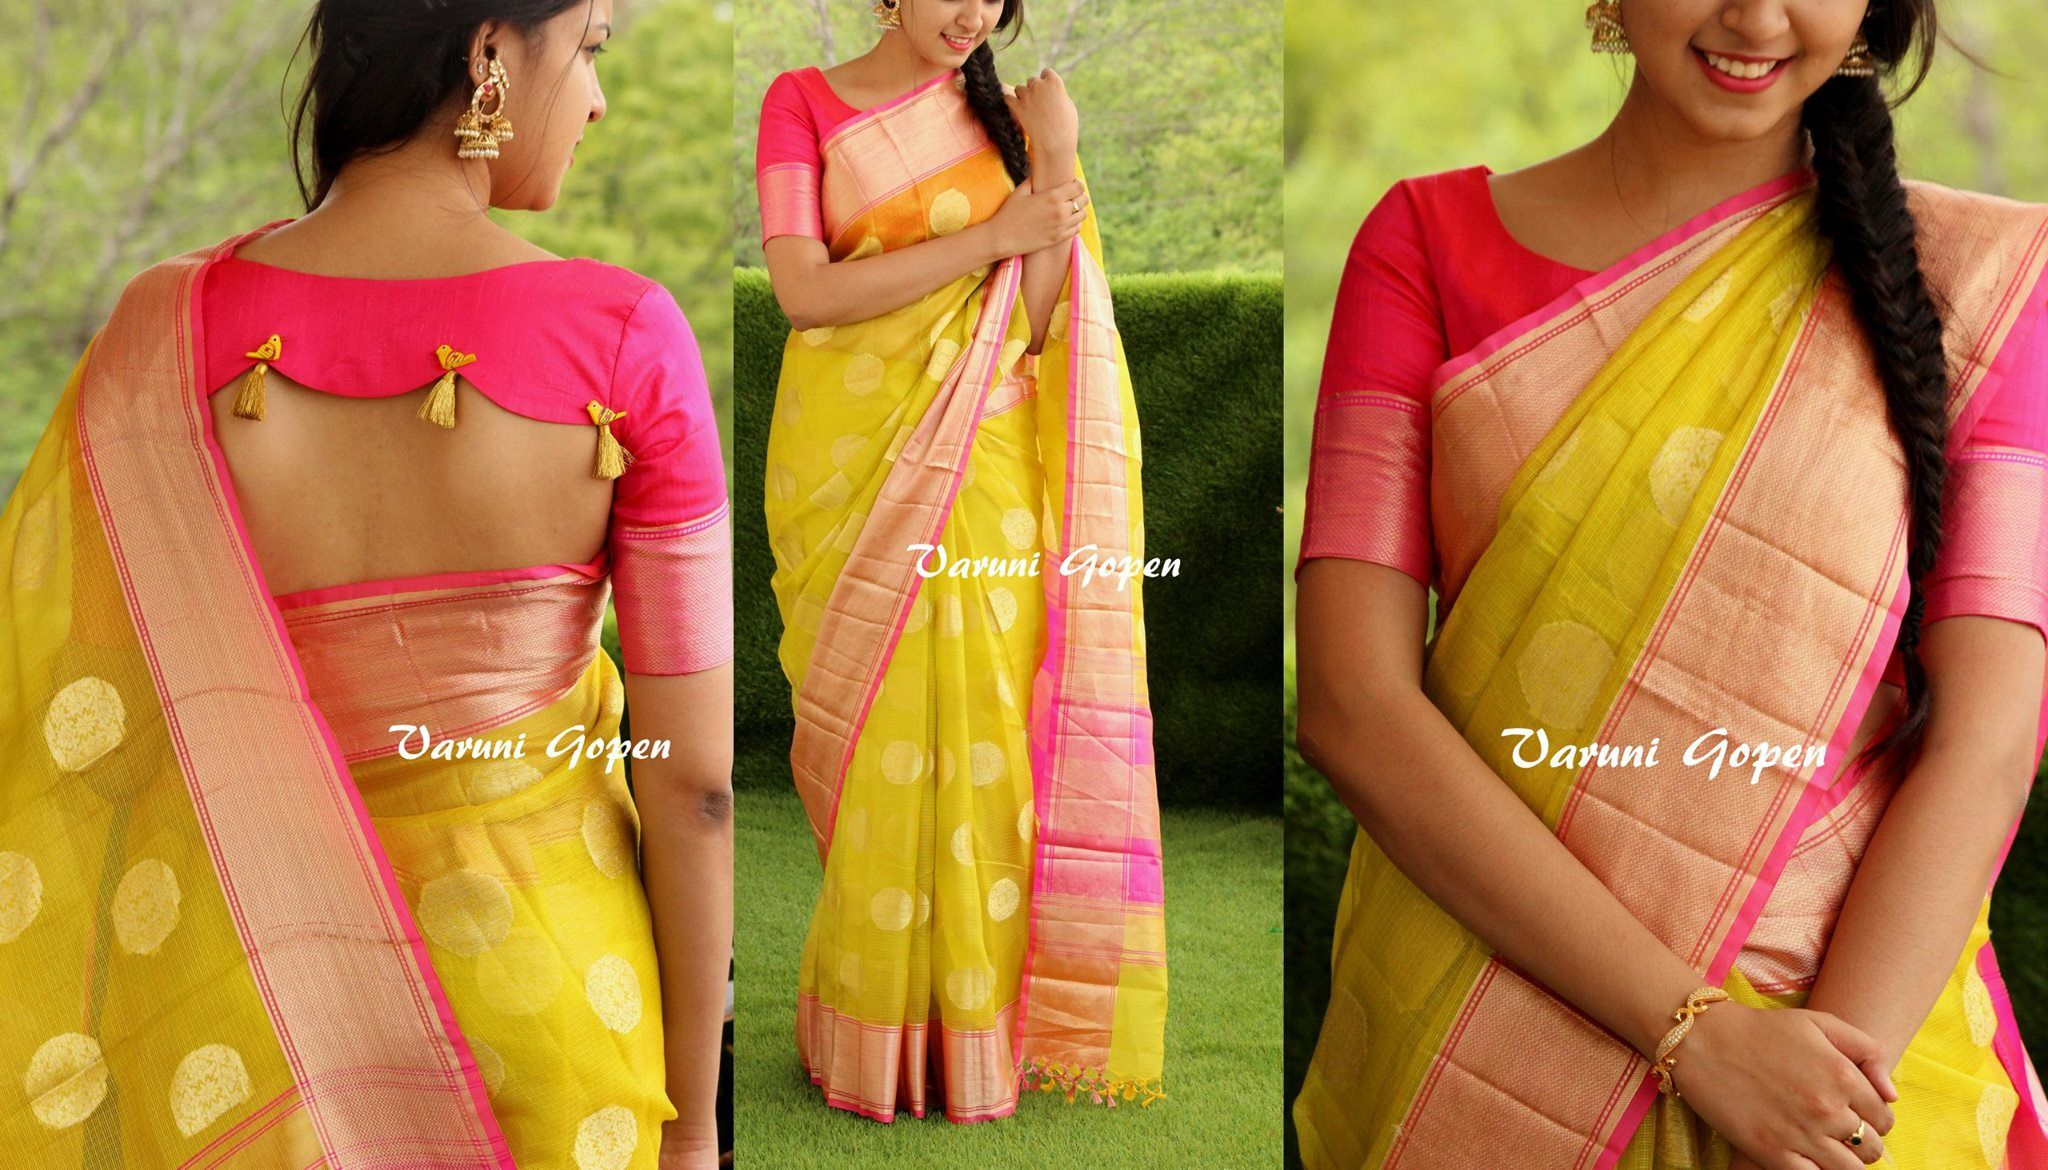 VARUNI GOPEN DESIGNS.  <br> Contact : varunigopen@gmail.com. <br> Call : 098491 25889.